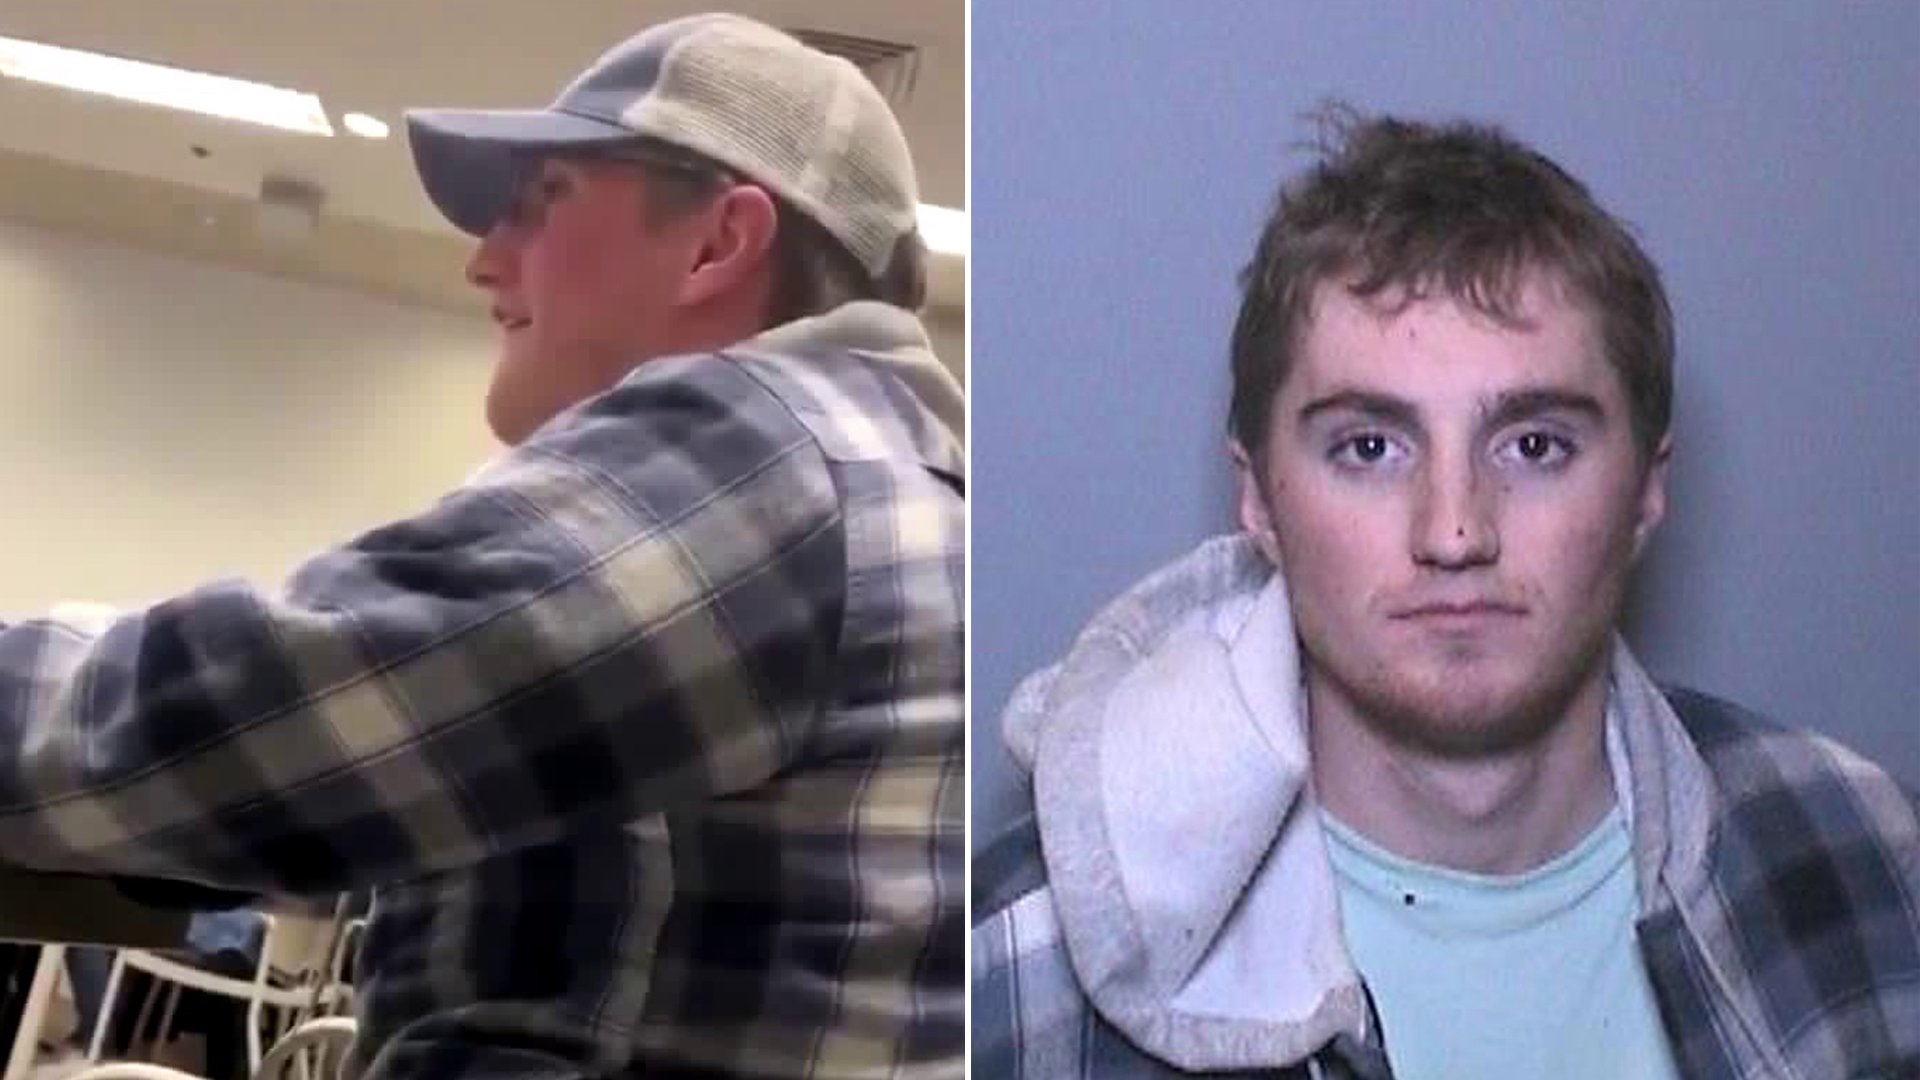 A man is seen using obscene language in a classroom at Chapman University on Feb. 4, 2020. (Credit: @thereal_mowens/ Twitter) On the right, Dayton Kingery, 21, is seen in a booking photo provided by the Orange Police Department.